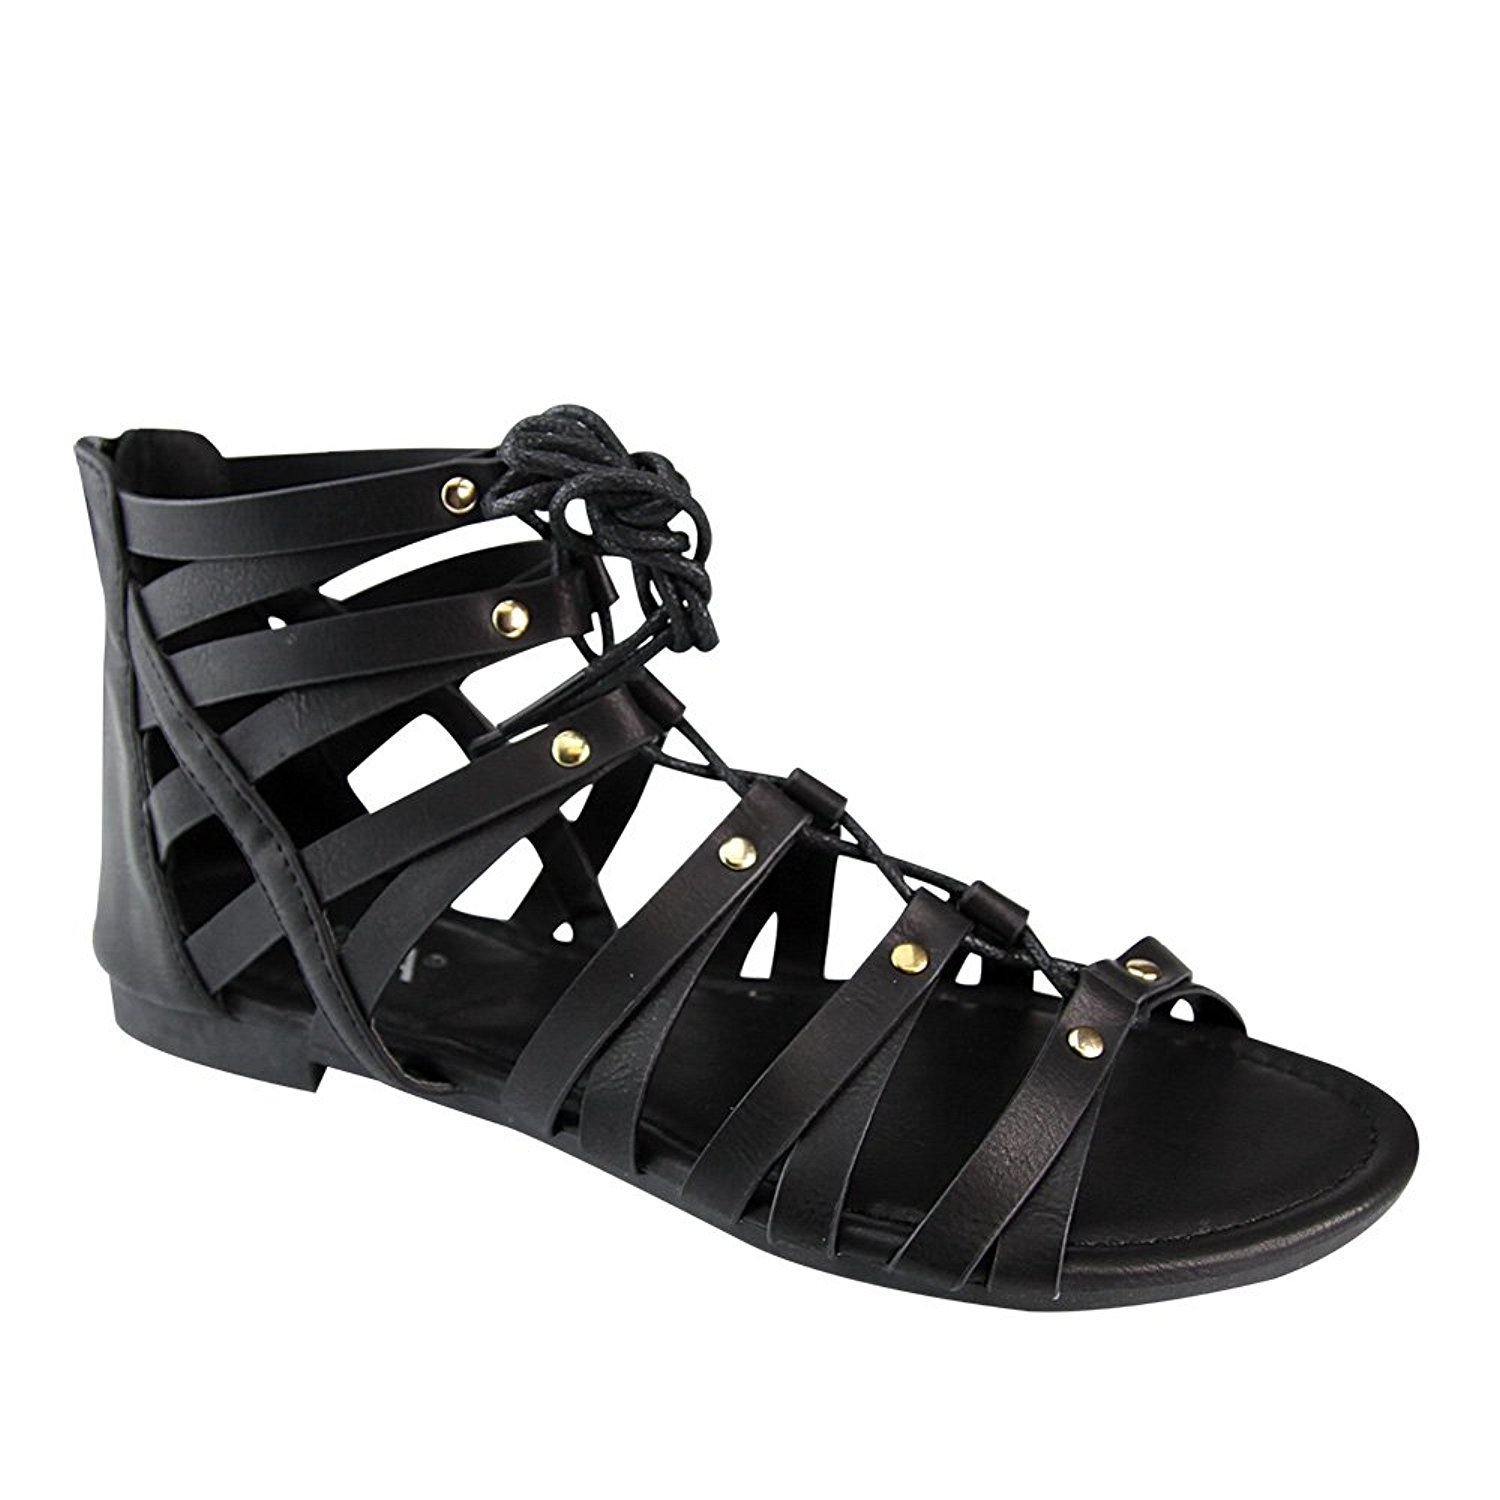 Womens sandals that zip up the back - Anna Brina 10 Women S Studded Strappy Lace Up Back Zipper Gladiator Flat Sandals